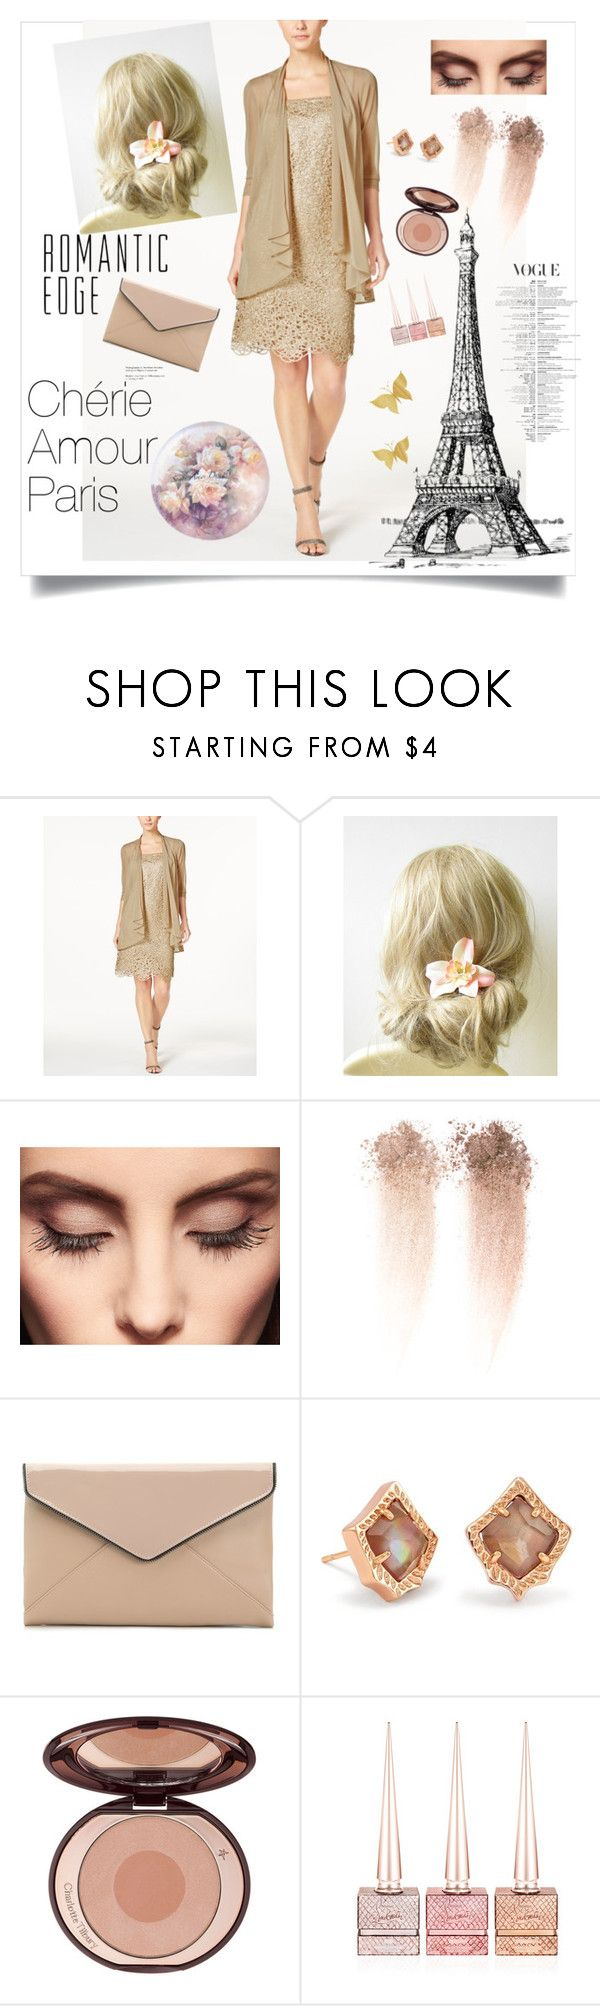 """""""Chérie"""" by aminiona ❤ liked on Polyvore featuring R & M Richards, Claire Evans, La Diva, Kendra Scott and Christian Louboutin"""